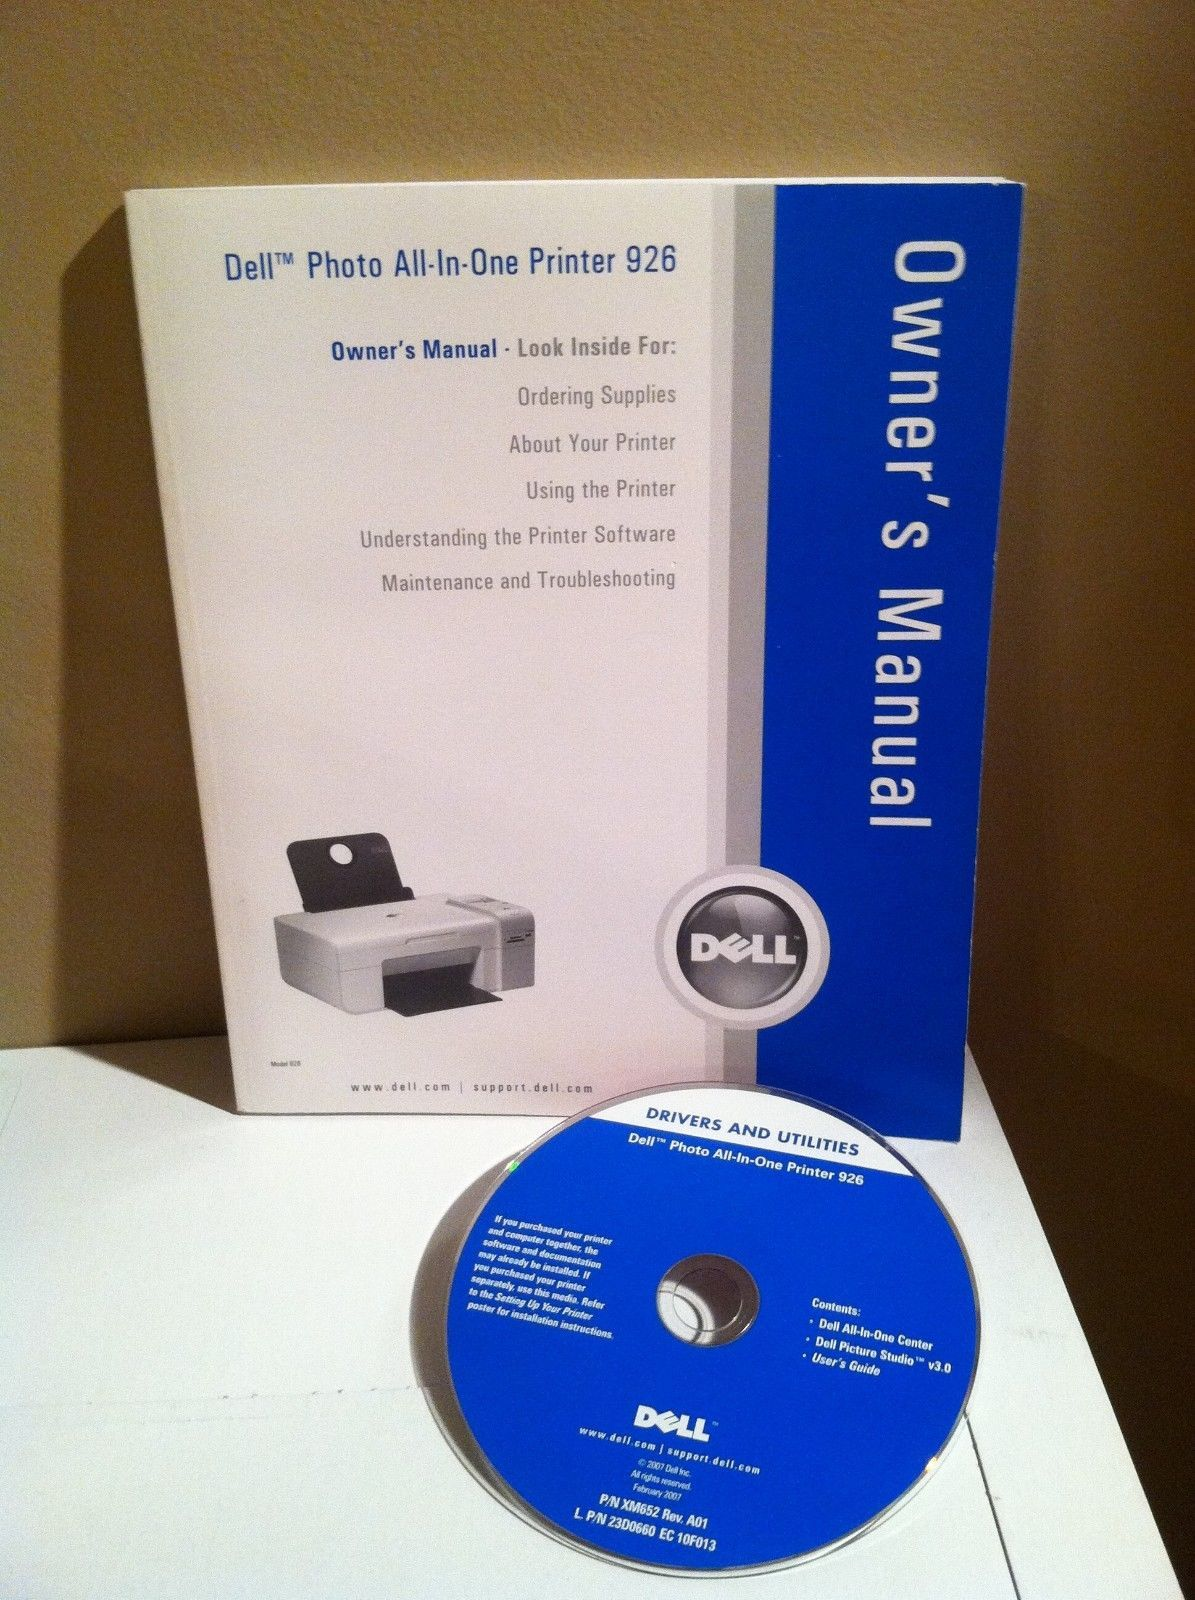 dell photo all in one printer 926 owner s manual printer driver rh pinterest co uk dell 926 printer driver for windows 7 dell 926 printer troubleshooting alignment